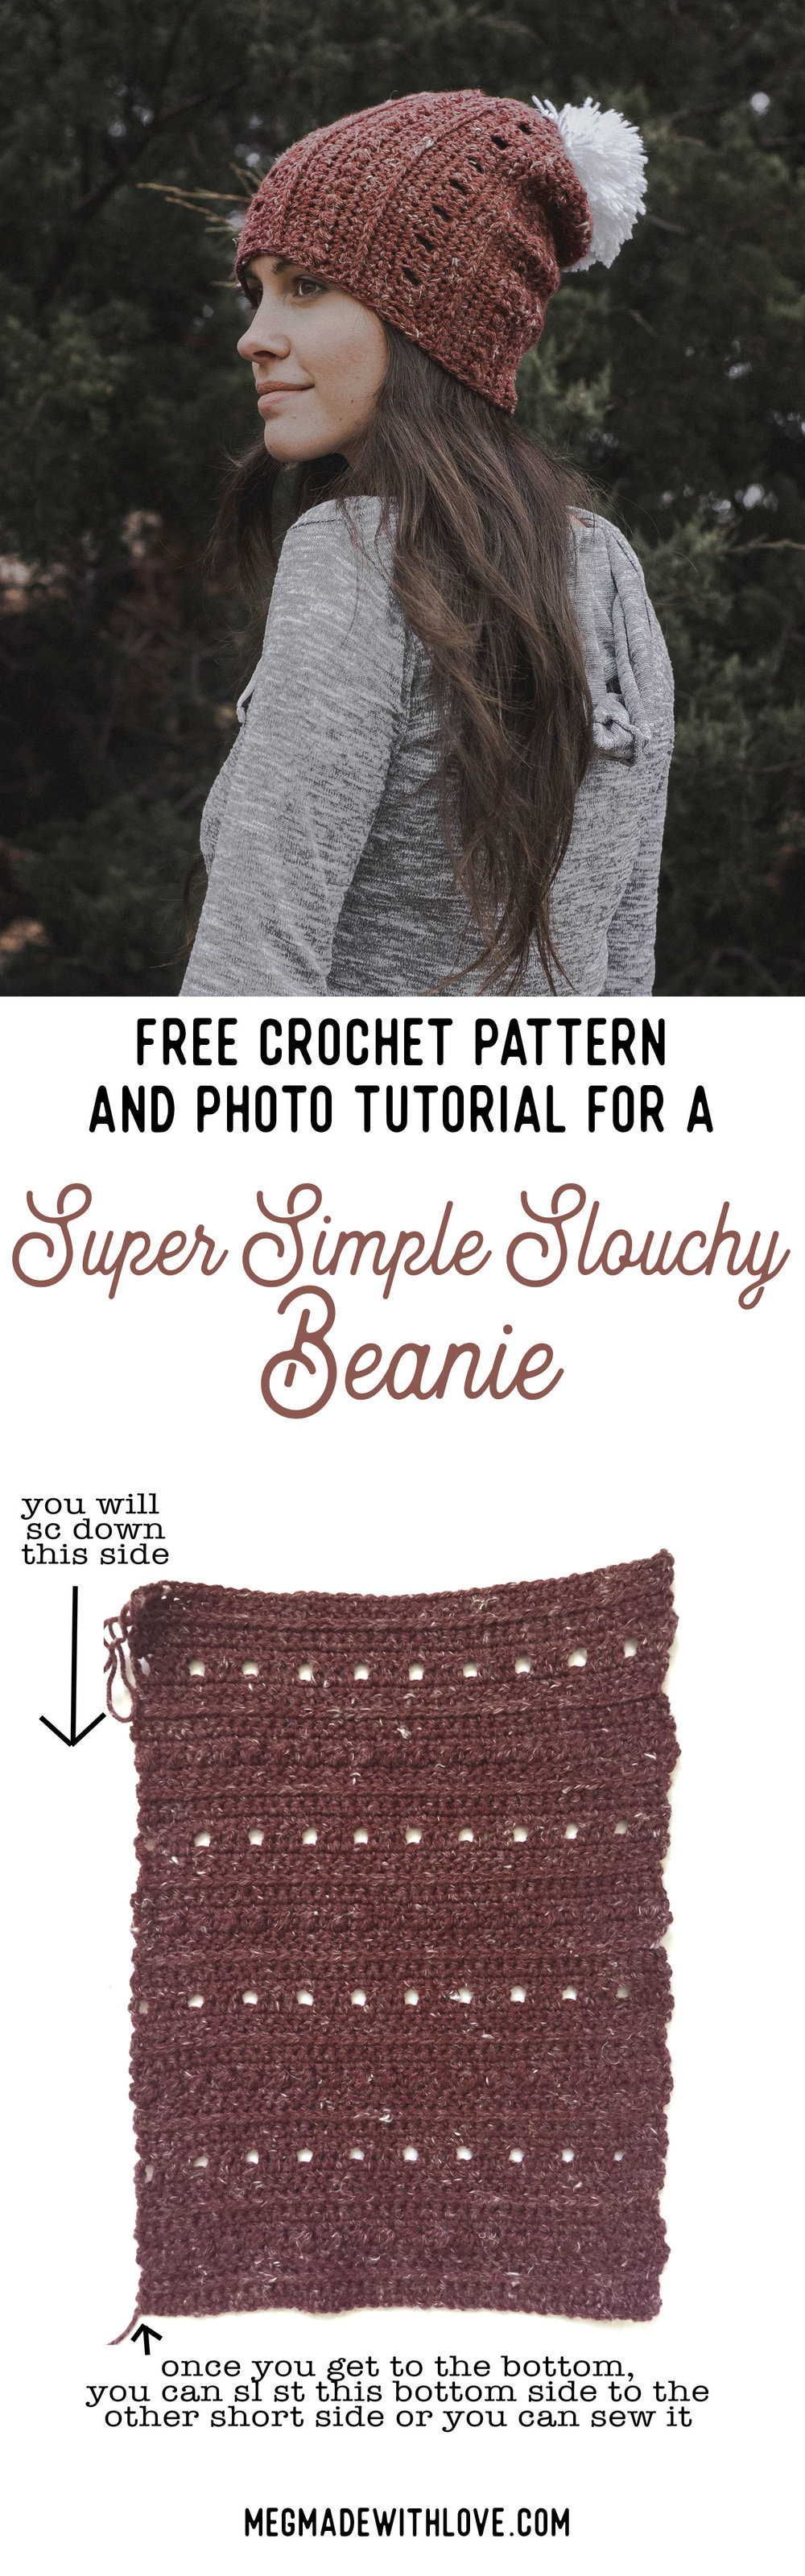 Free Crochet Pattern for a Super Simple   Slouchy Beanie — Megmade ... 6bd9551dada